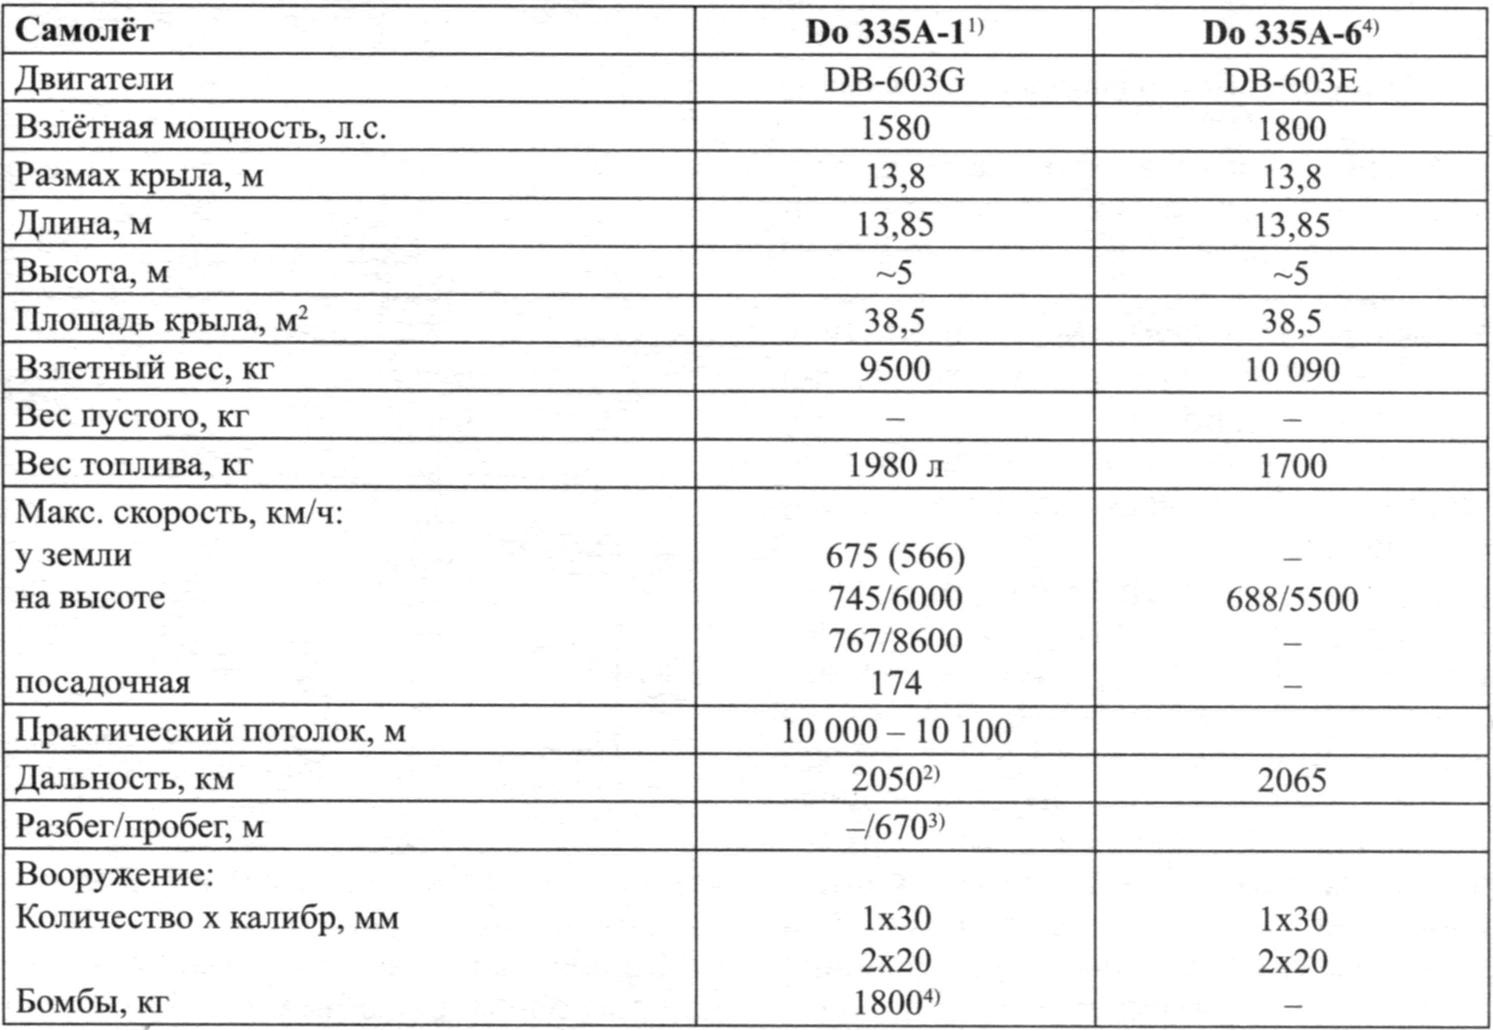 Key figures of the Do 335A-1